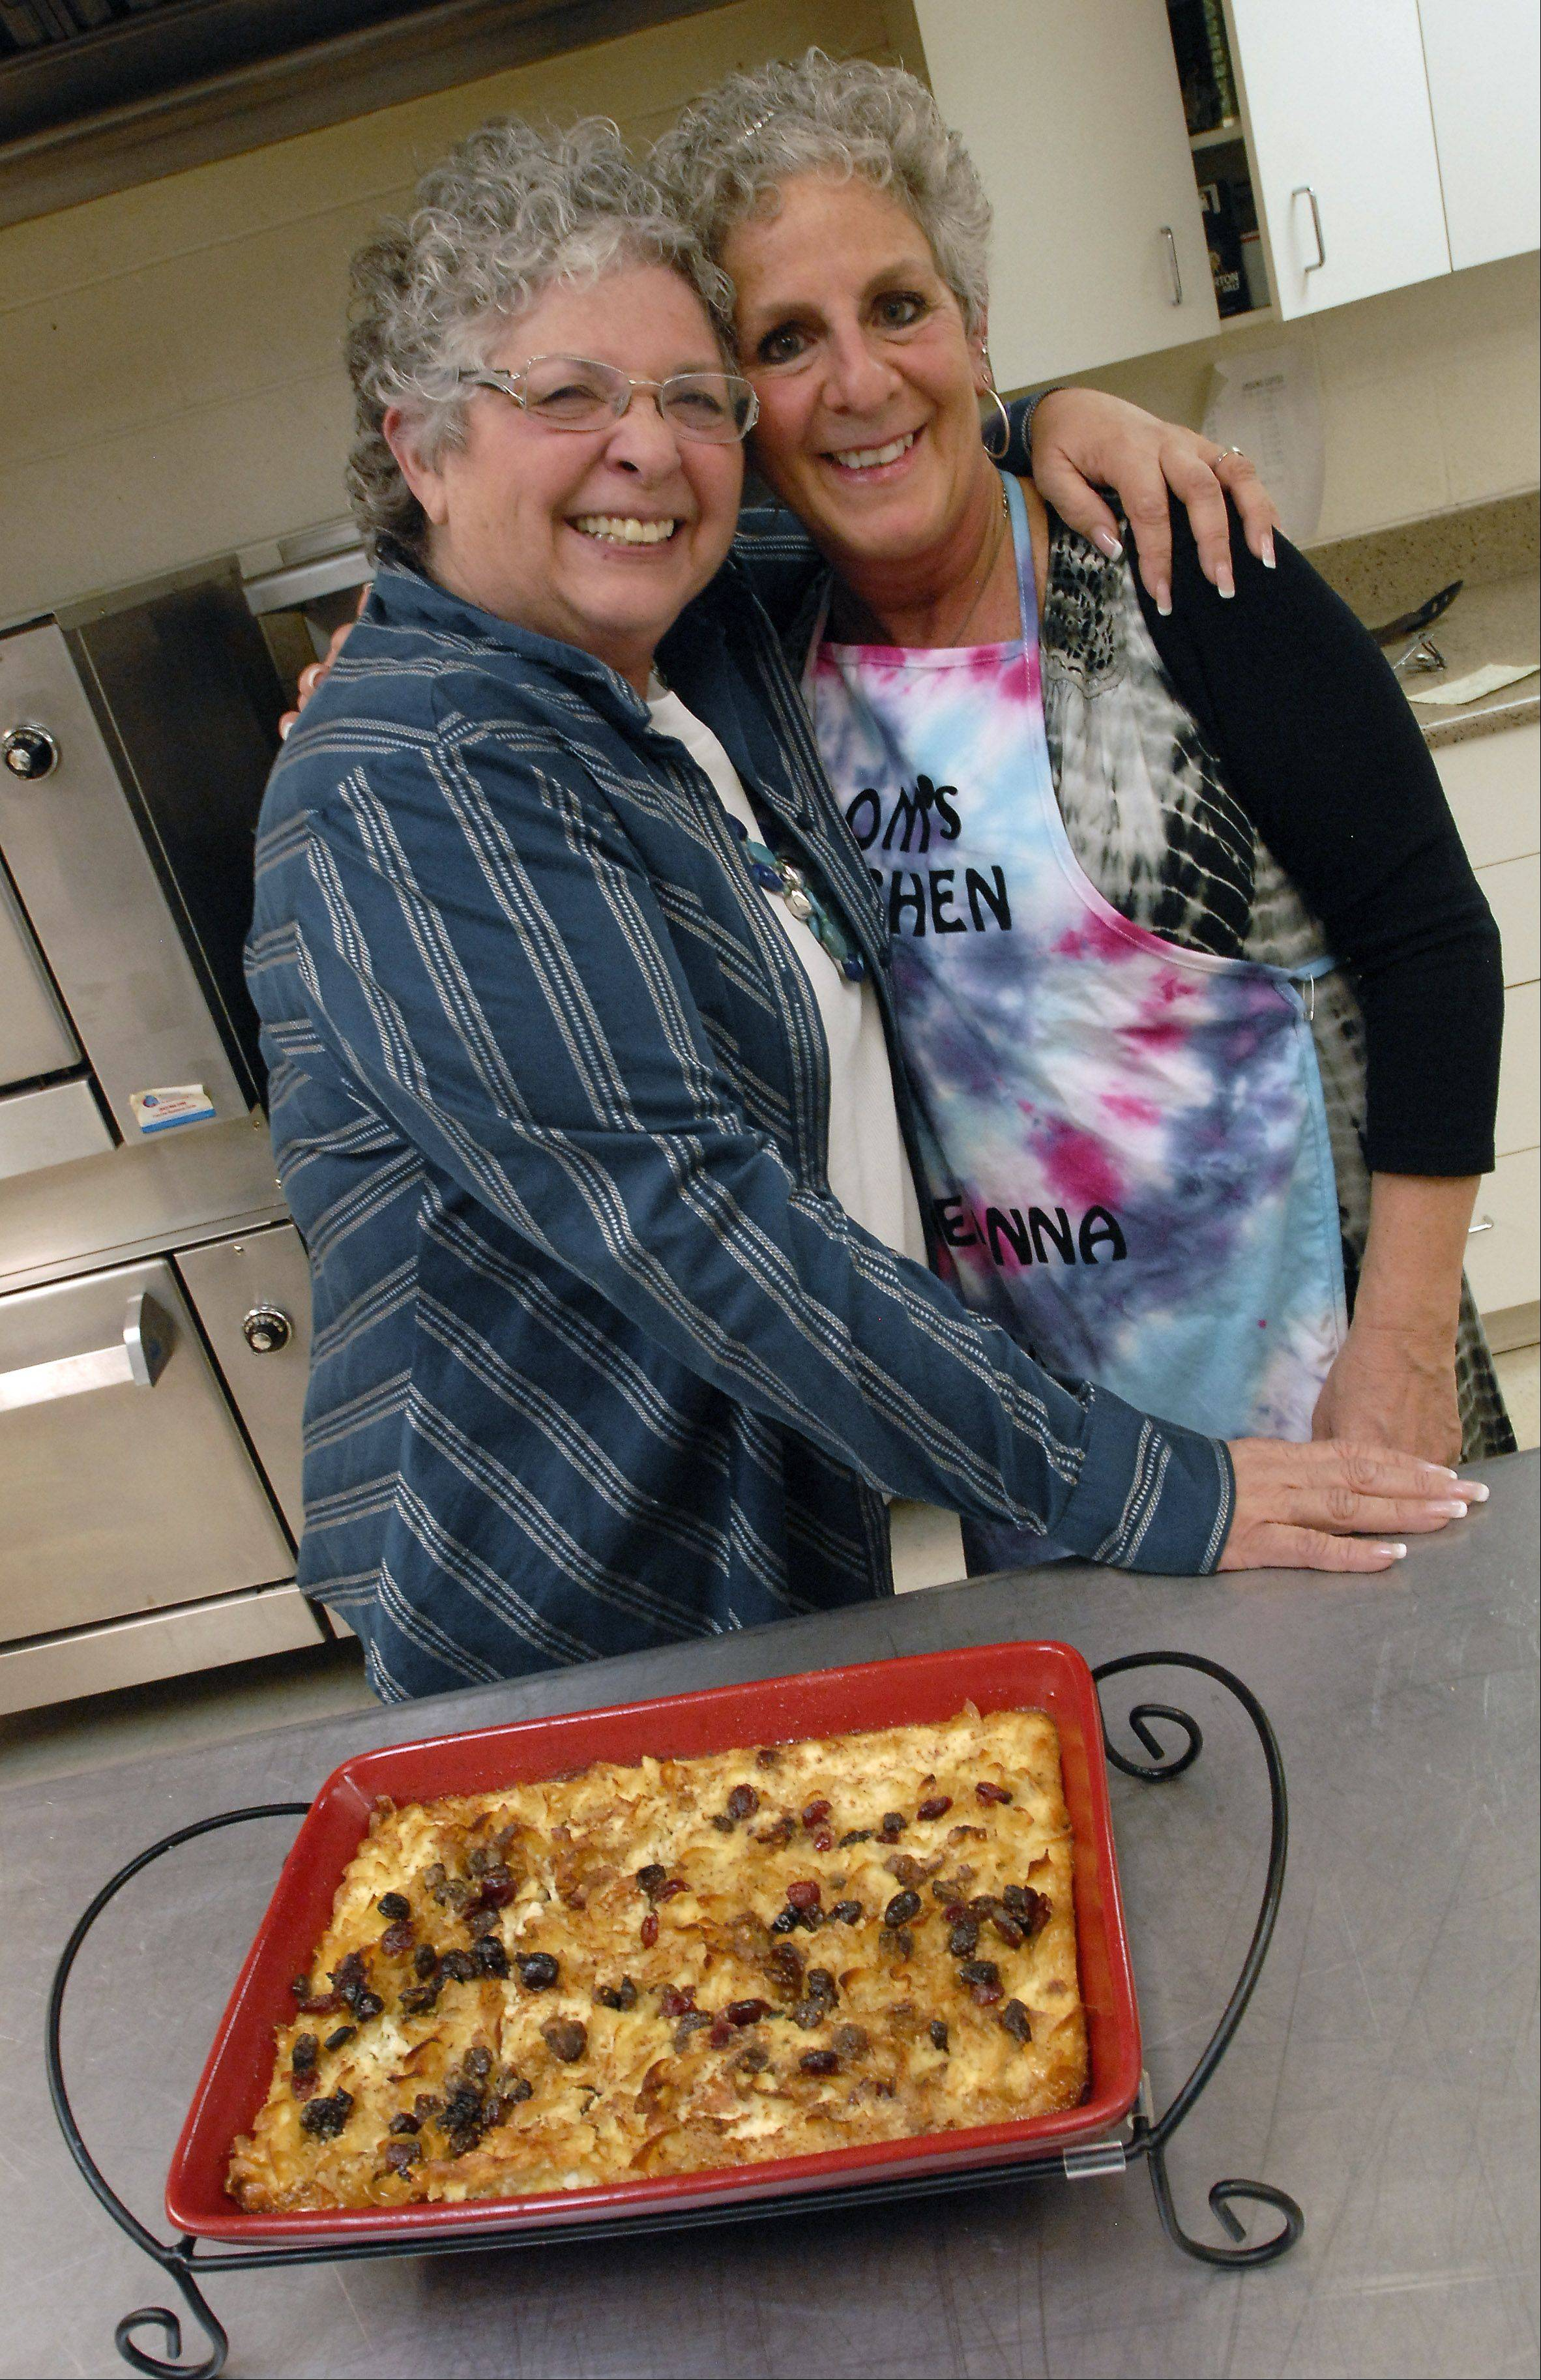 Roberta Fahey, right, gets a hug from helper Gloria Katz in the kitchen at Beth Tikvah Early Childhood Center in Hoffman Estates where Fahey cooks each week for the students and teachers.